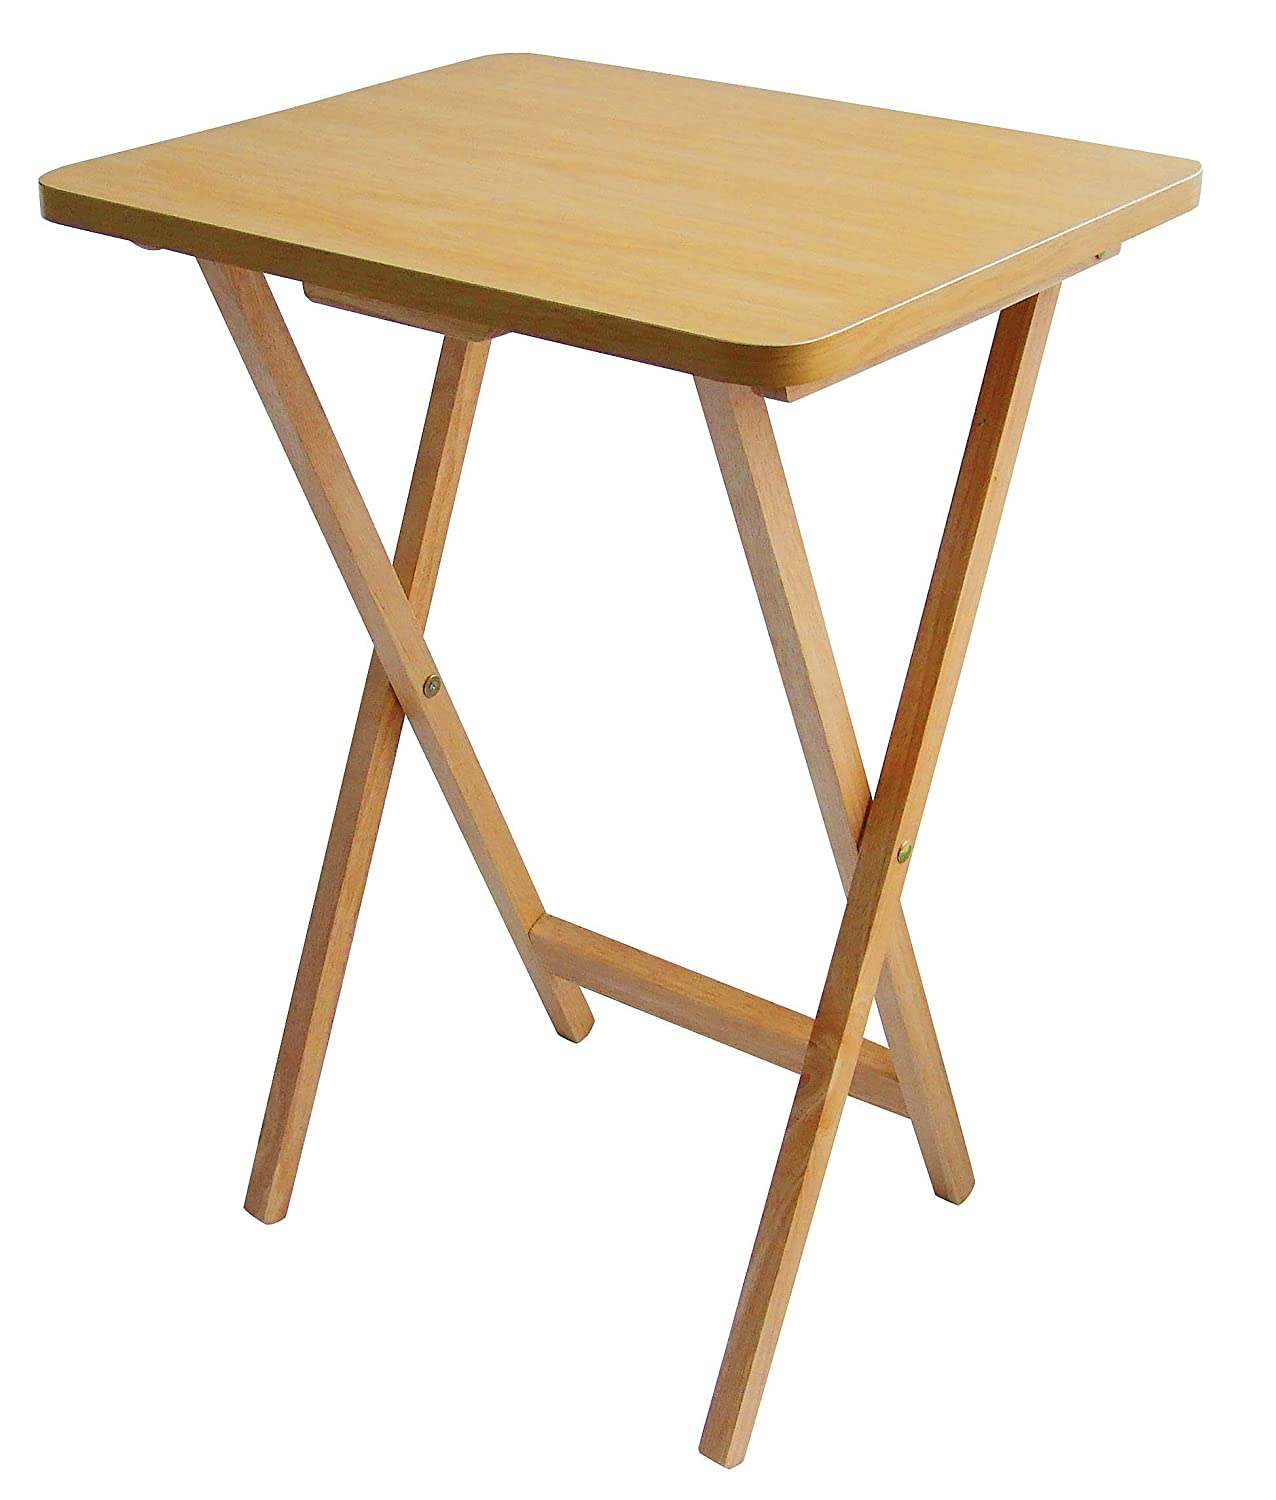 Folding Wooden Snack Table Desk Small Dining Foldable